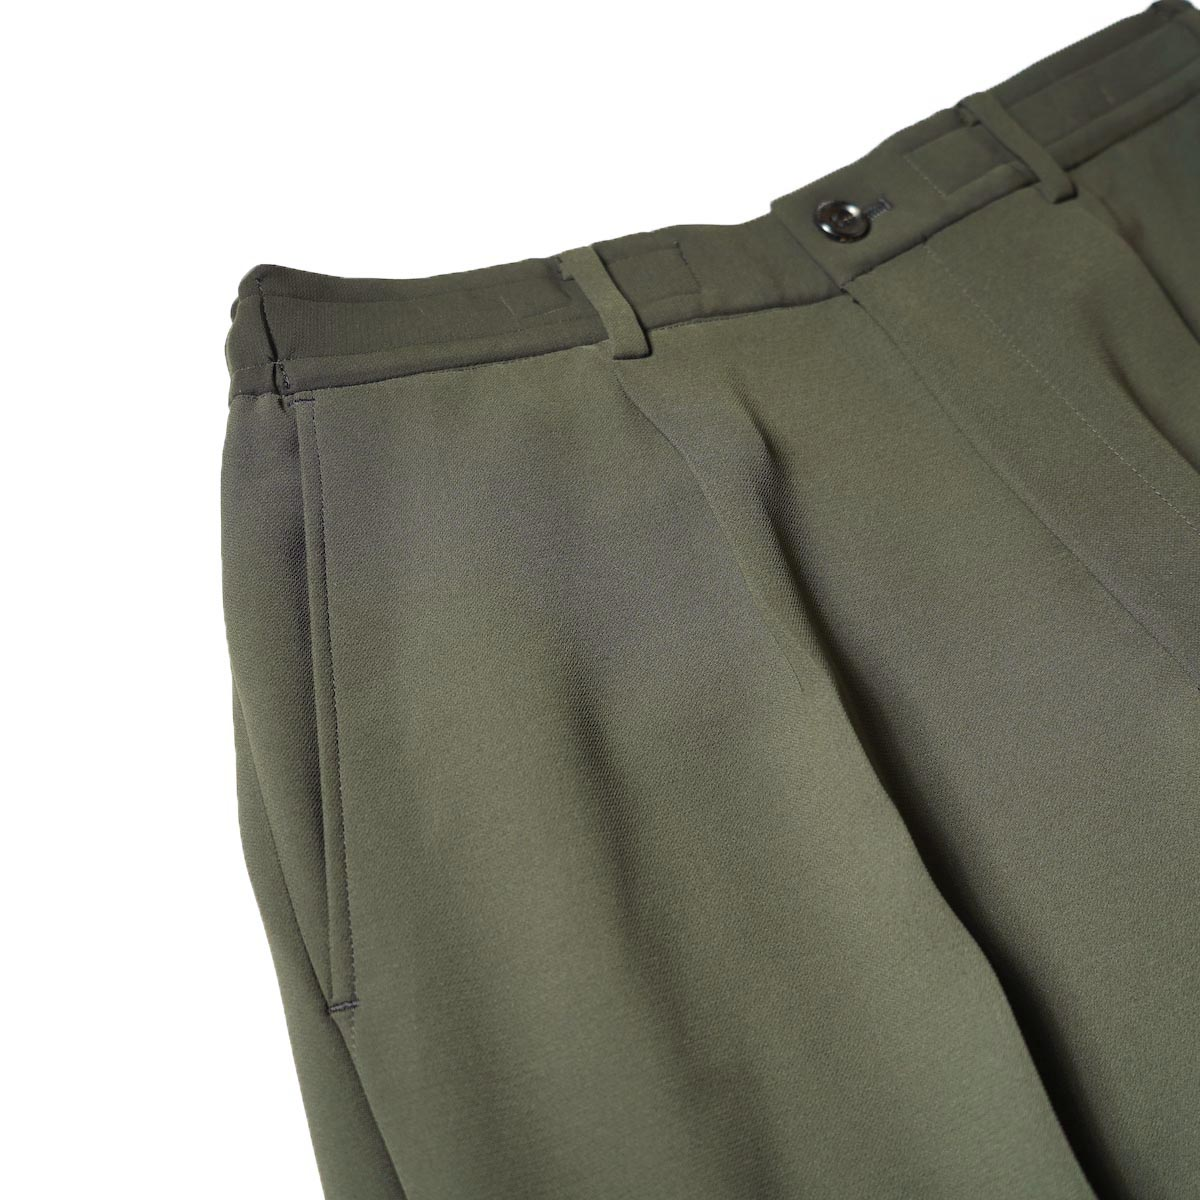 N.HOOLYWOOD / 2212-PT06-098 Wide Tapered Easy Slacks (Charcoal)1タック